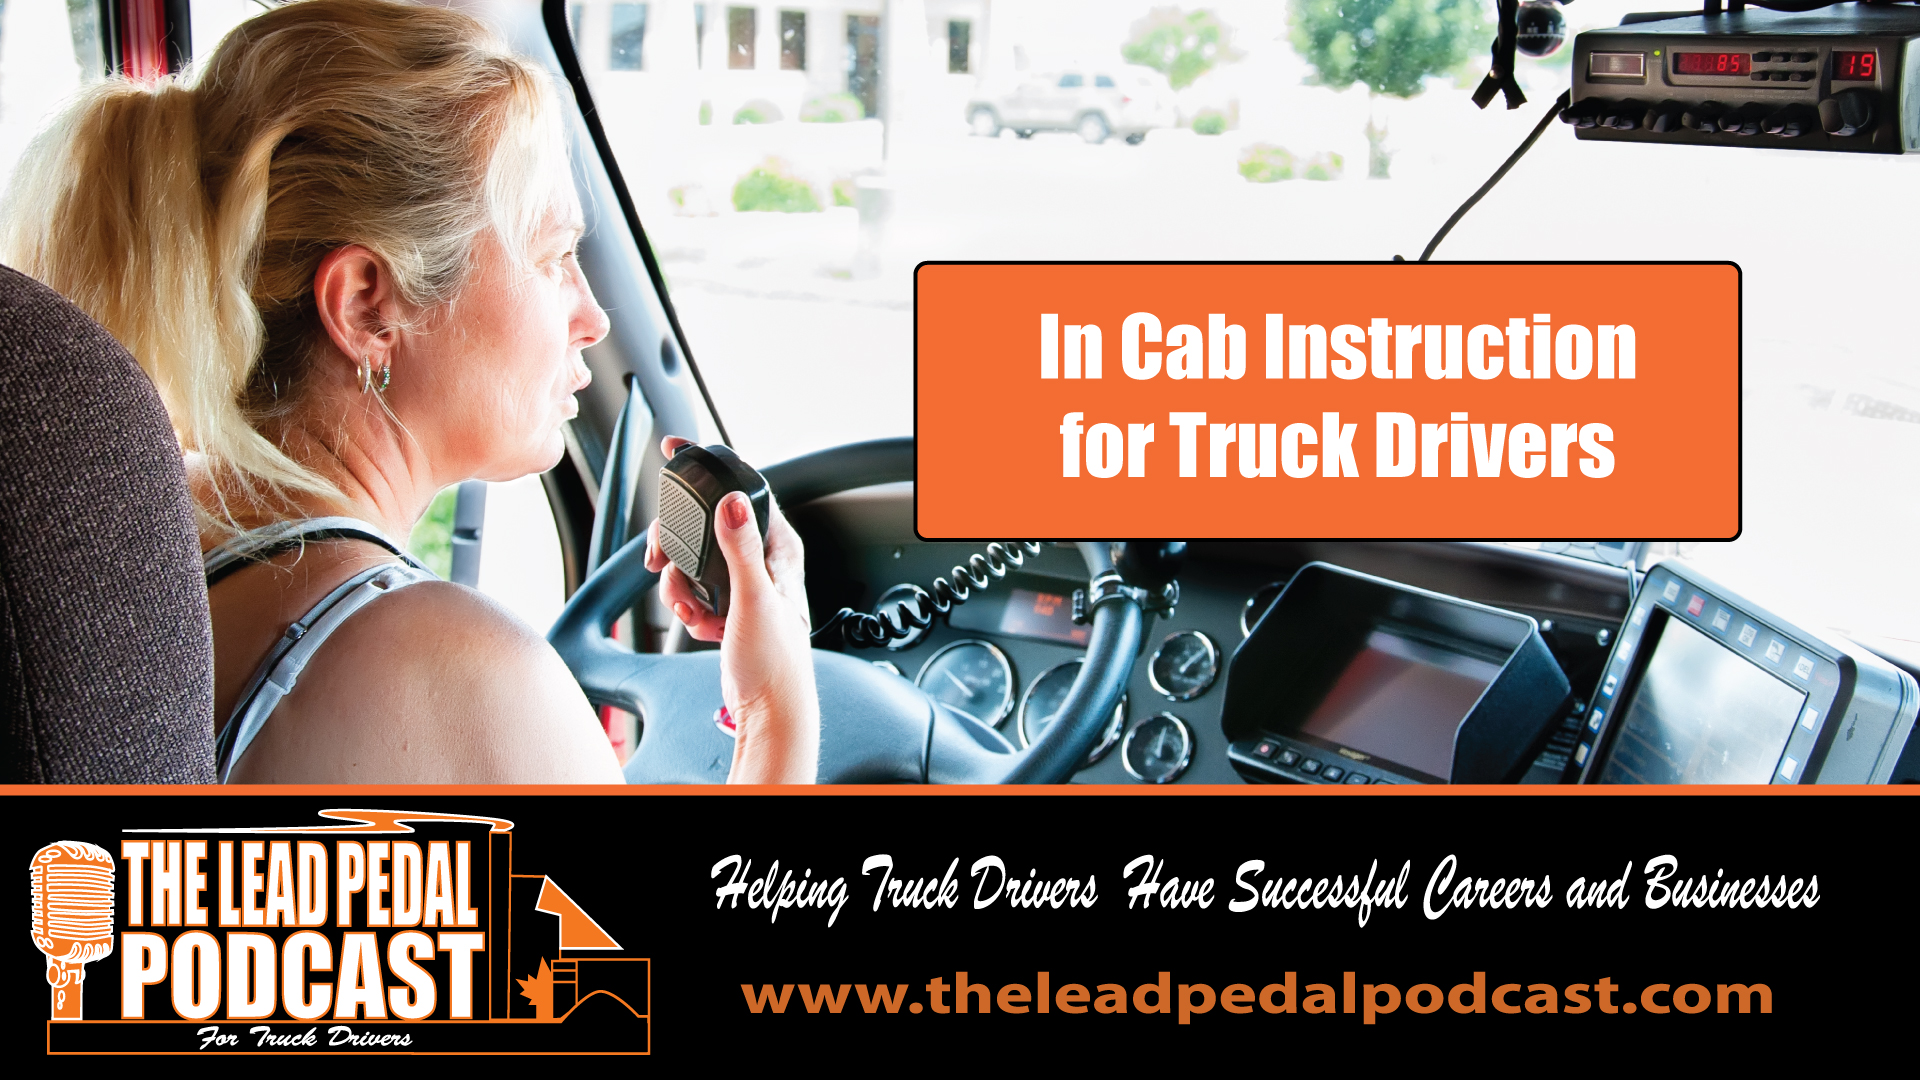 LP596 What Does It Take to Be a Successful In Cab Instructor